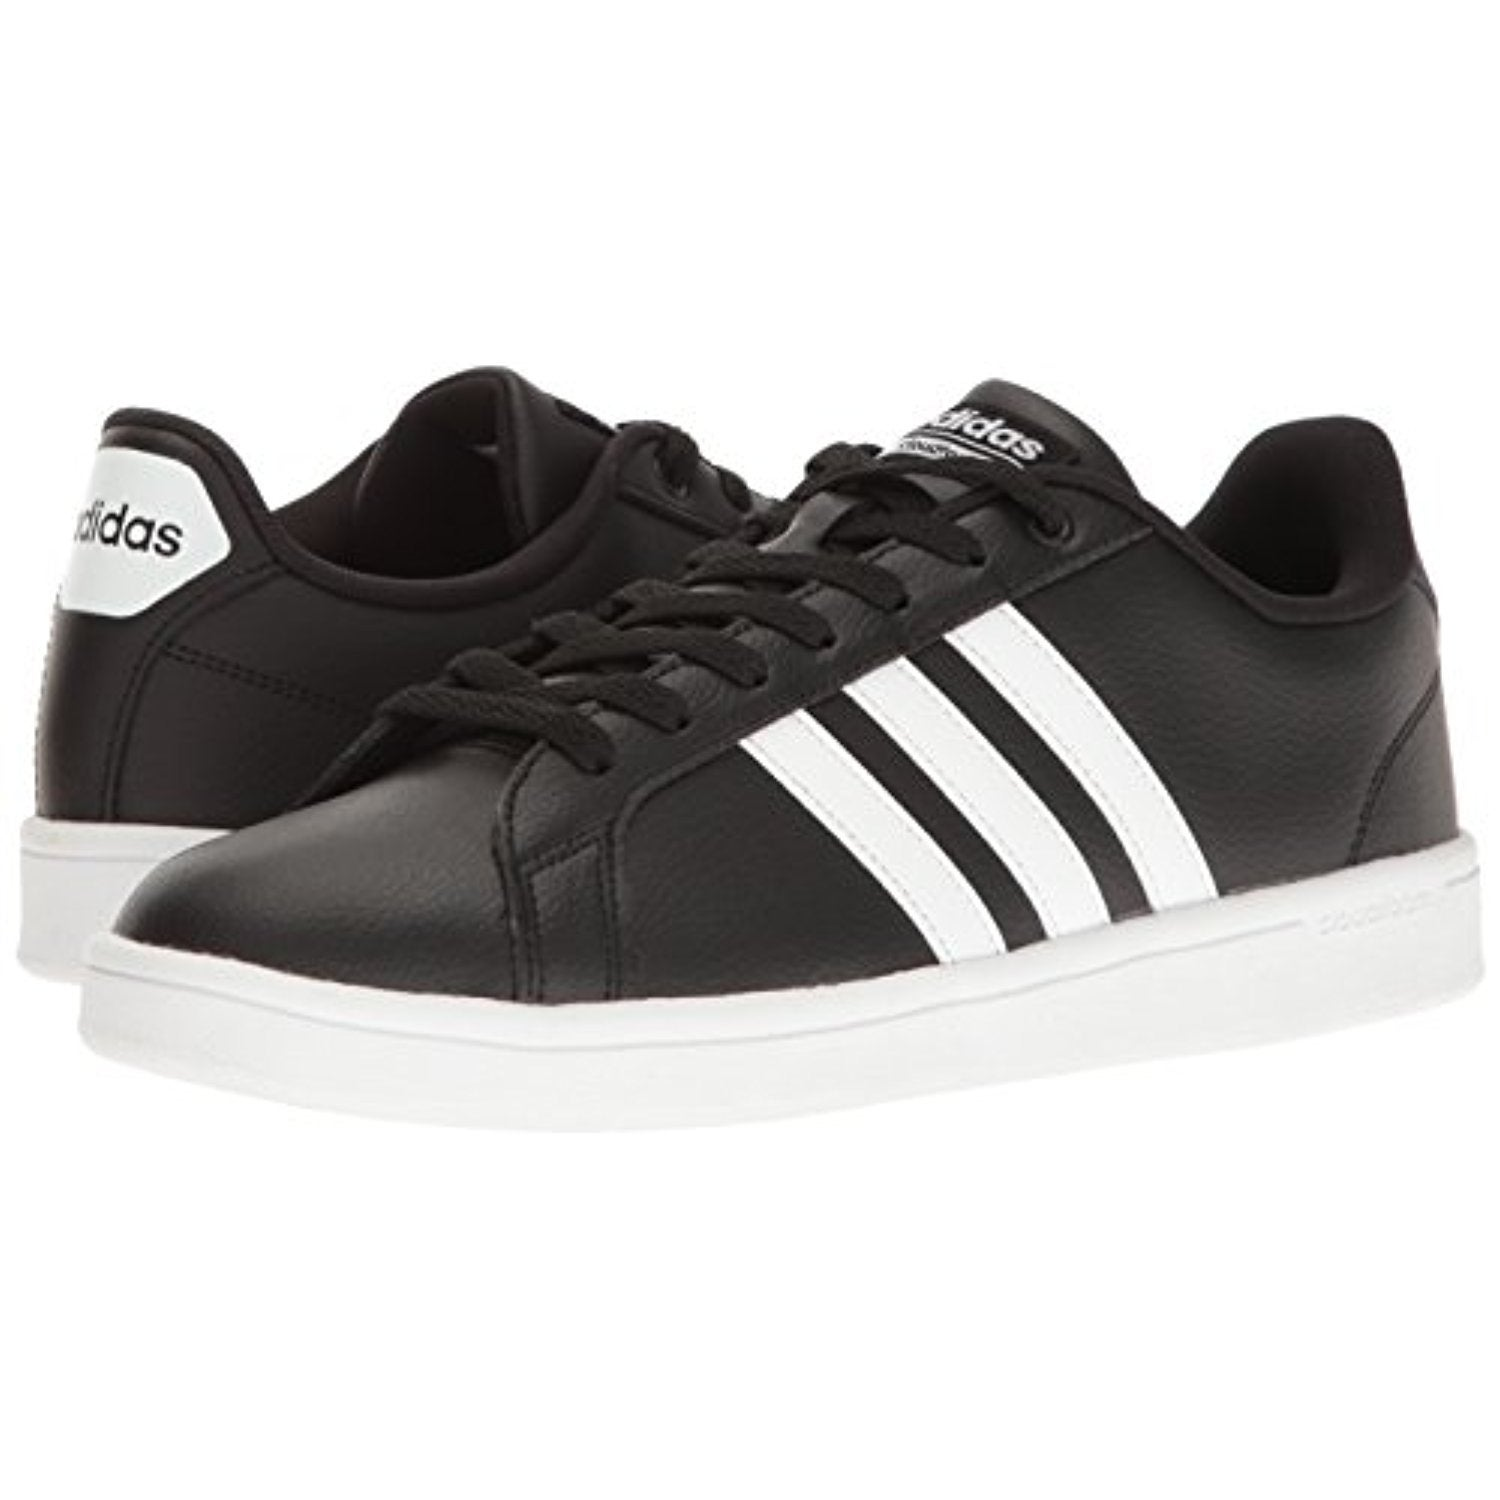 adidas NEO Men's Cloudfoam Advantage Sneaker, Black/White/White